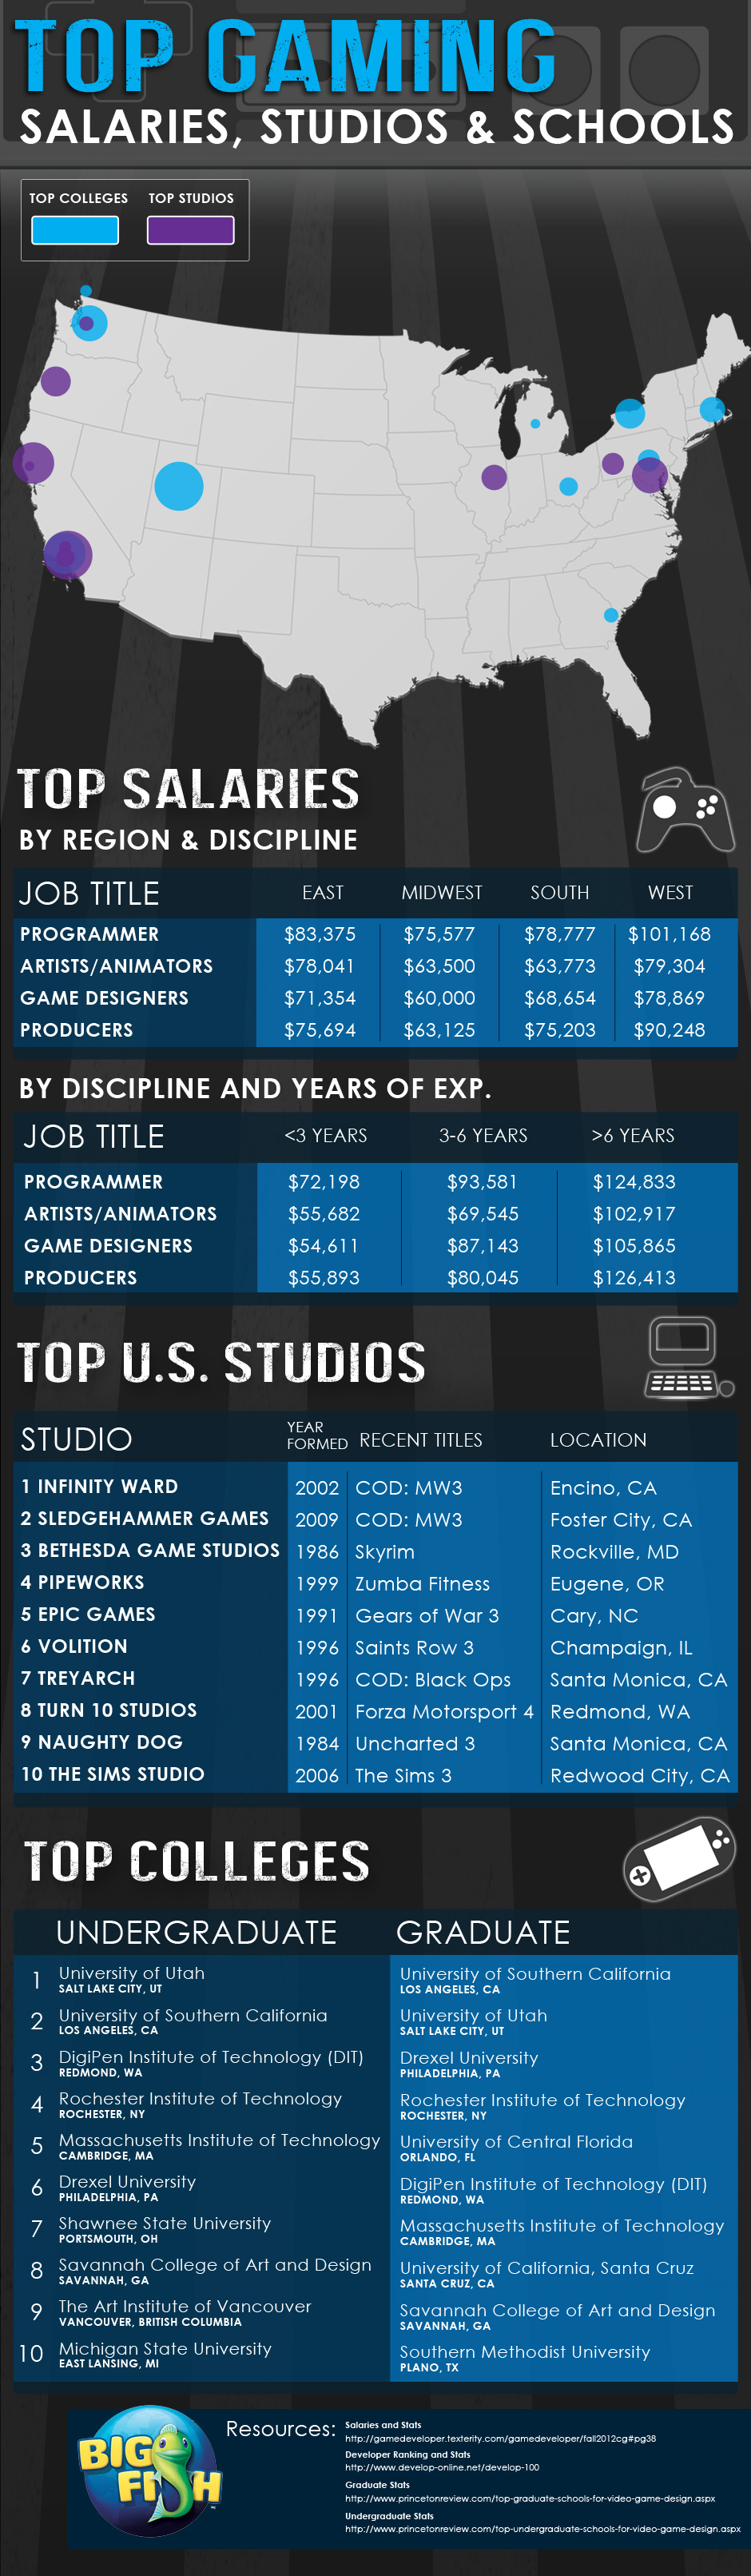 Video Game Industry - Top Studios, Schools and Salaries